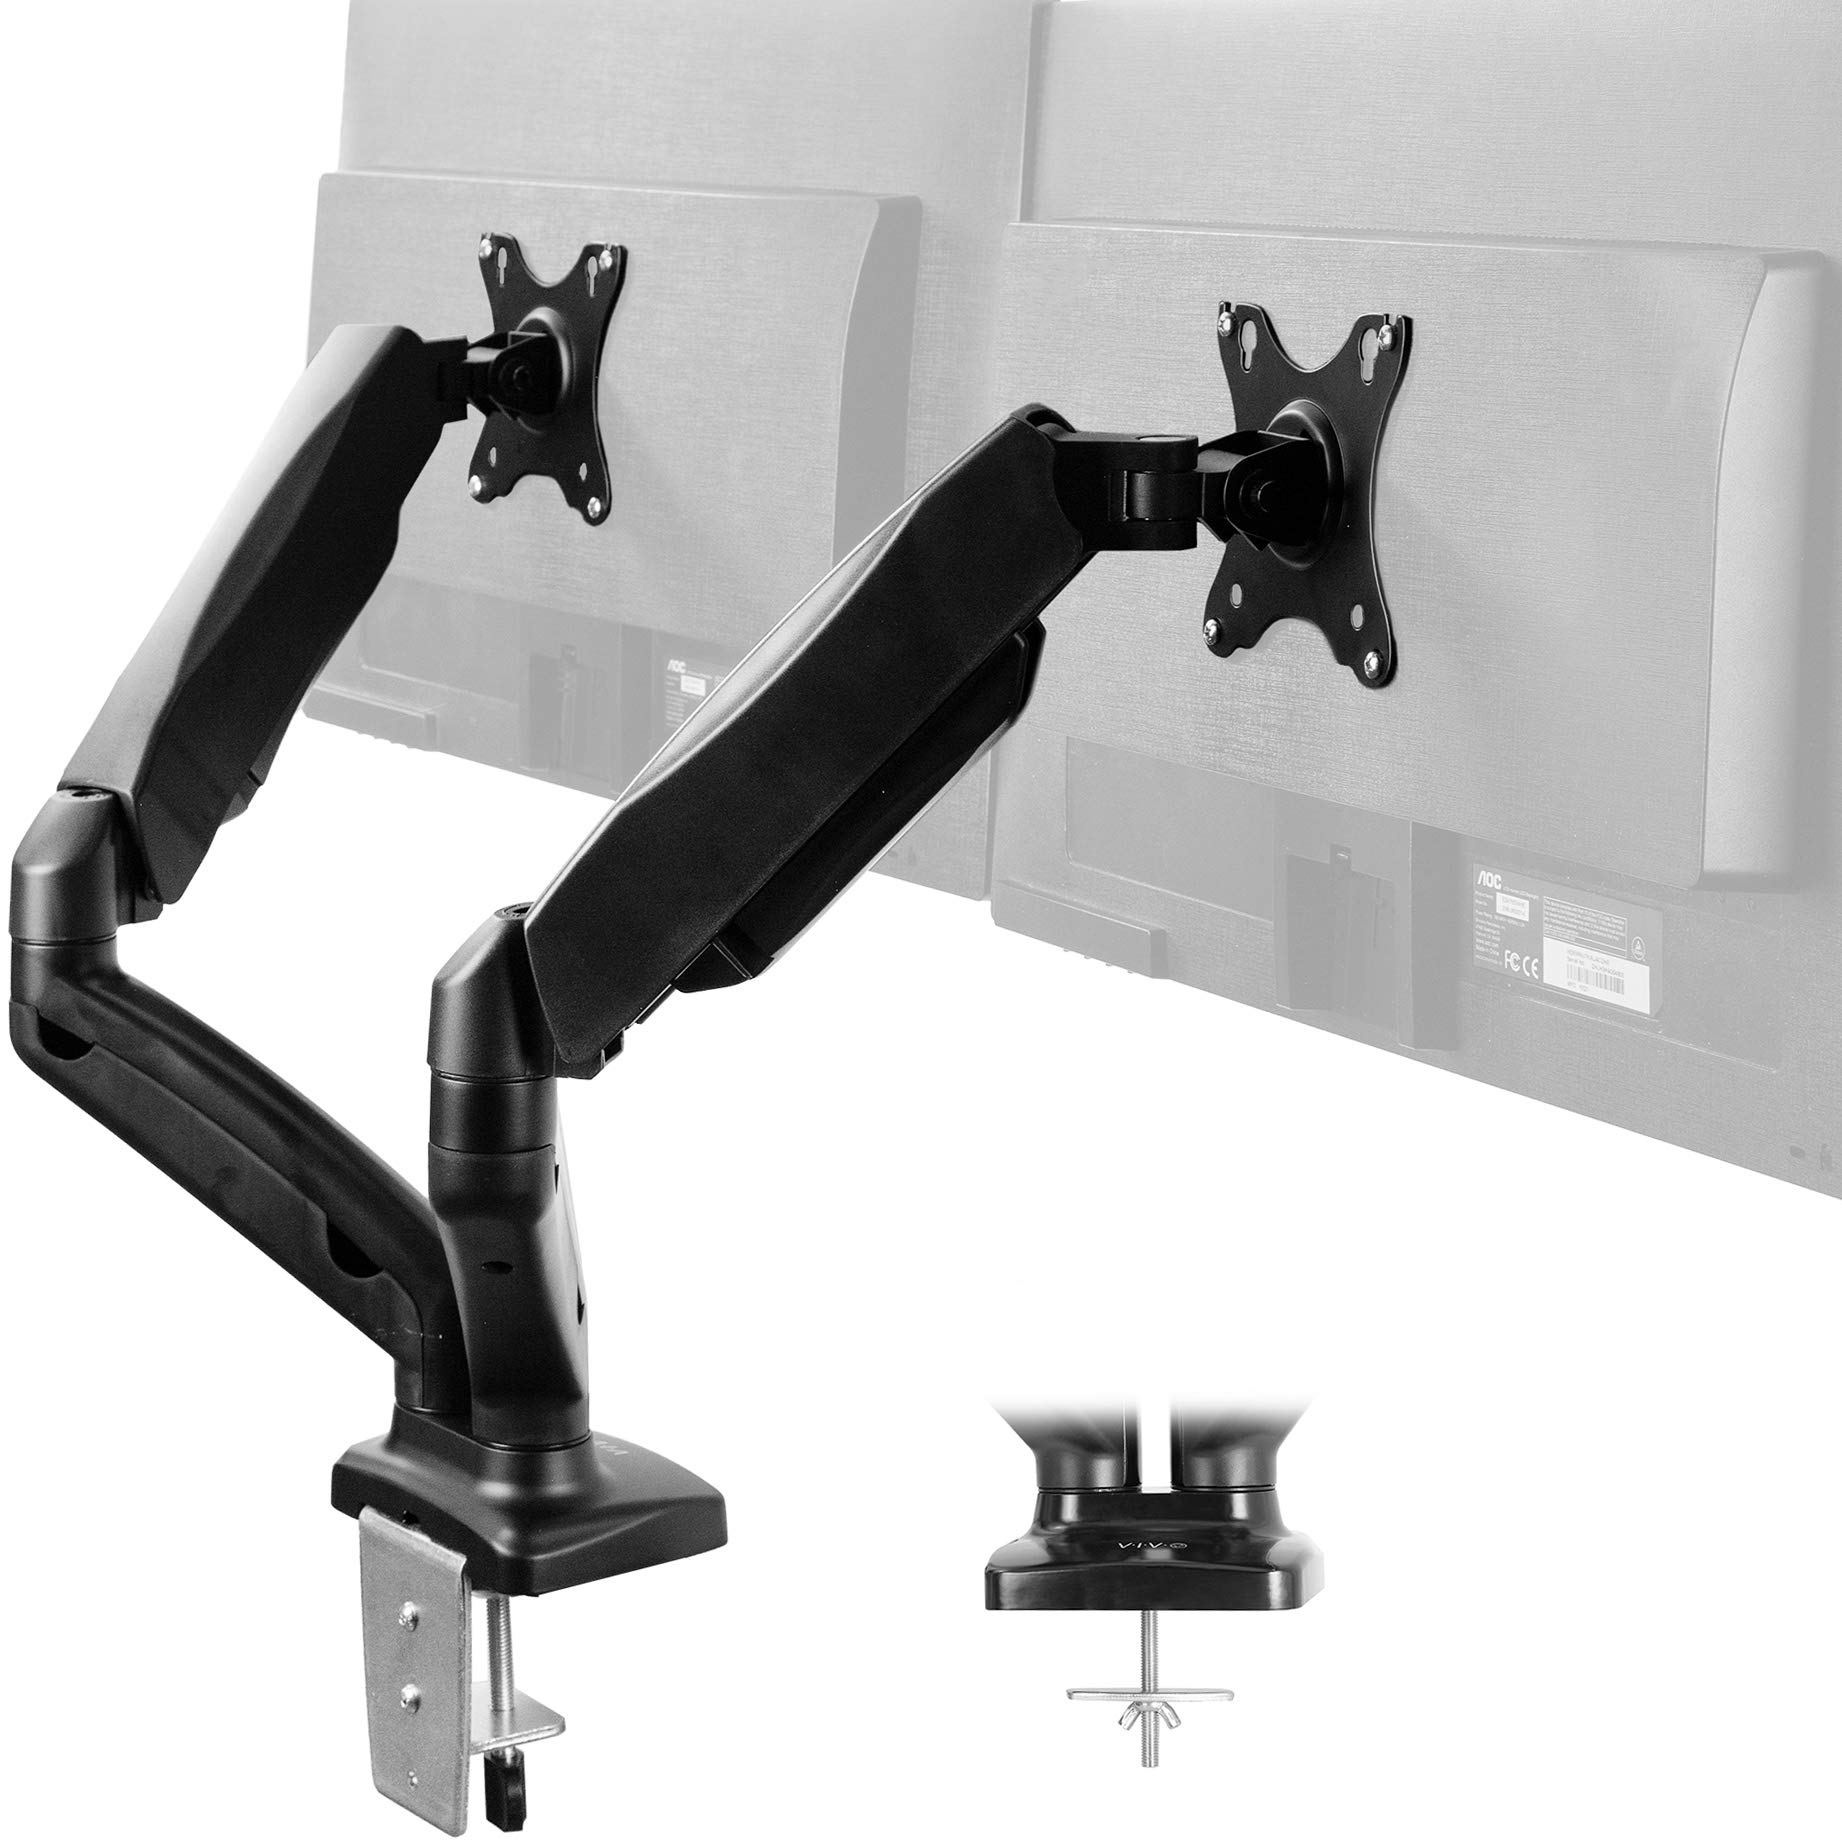 VIVO Dual Arm Monitor Desk Mount Height Adjustable, Tilt, Swivel, Counterbalance Pneumatic Stand | VESA Bracket Arm Fits Most Screens up to 27 inches (STAND-V002O) by VIVO